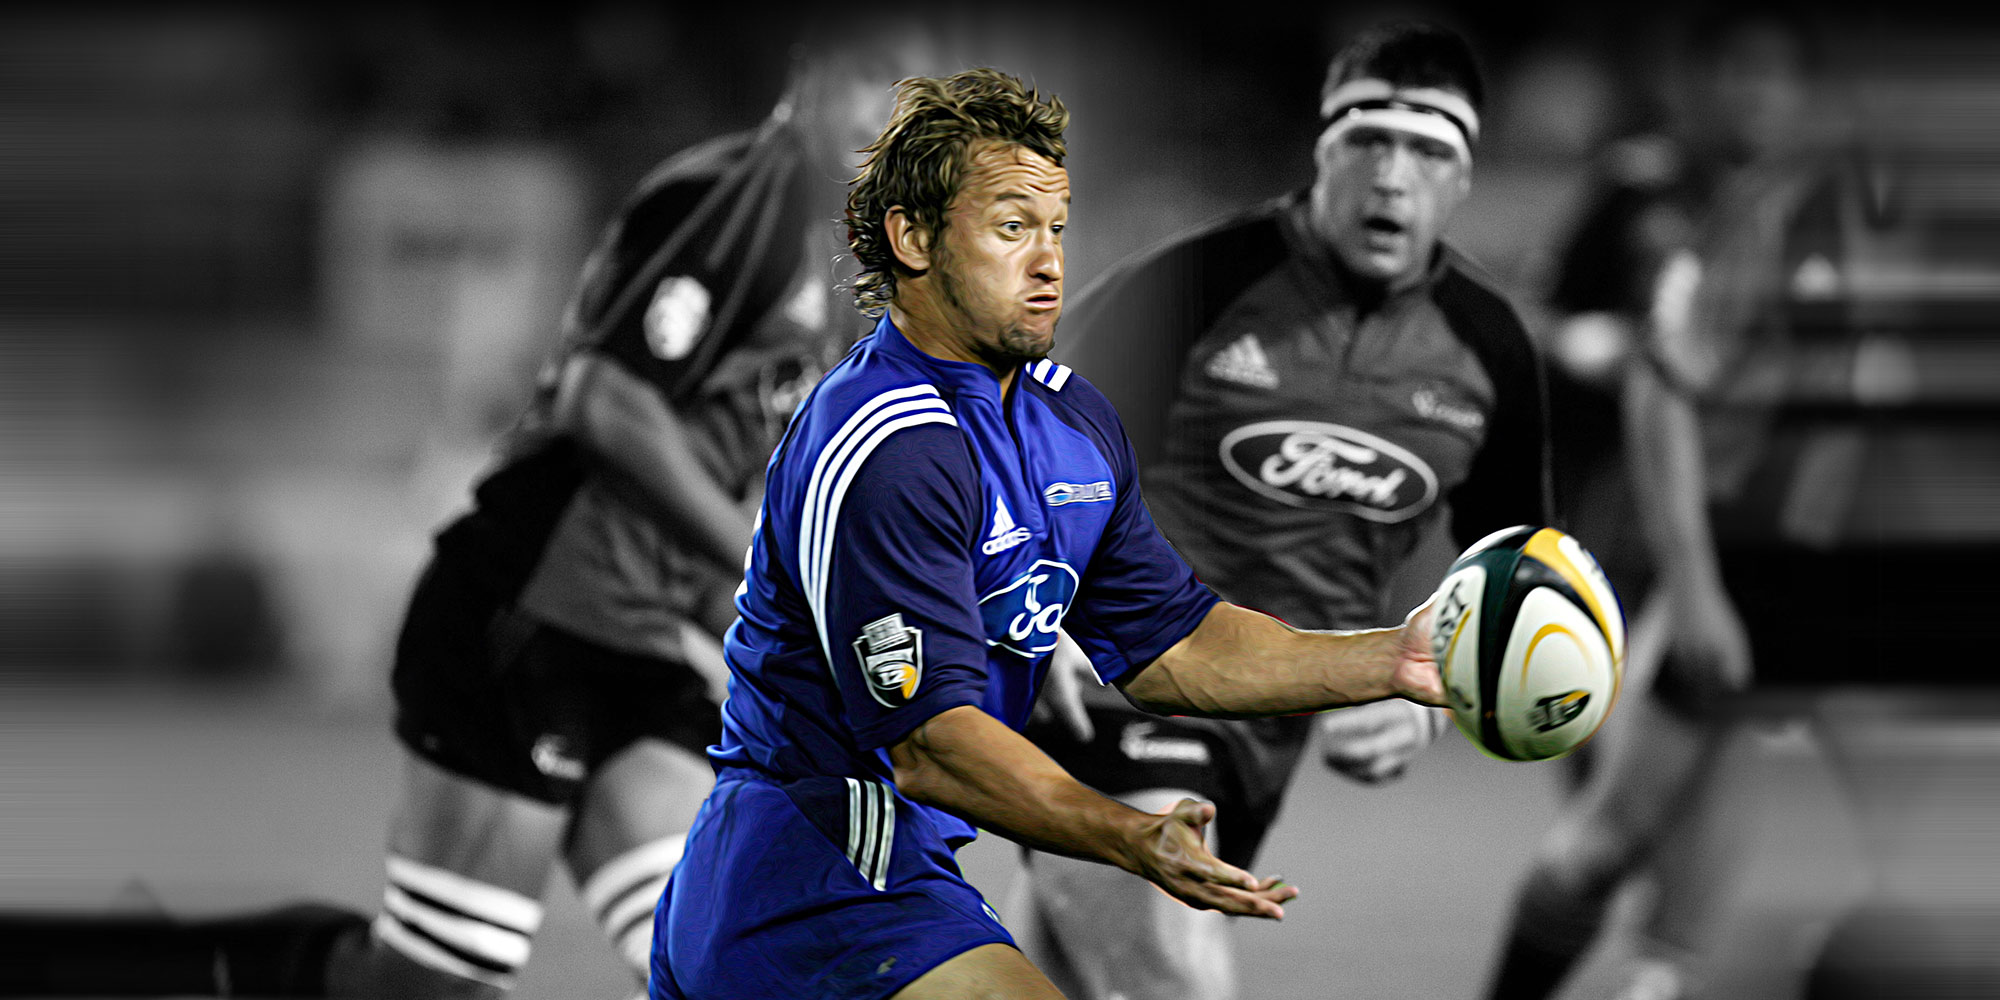 Unforgettable Super Rugby Moments